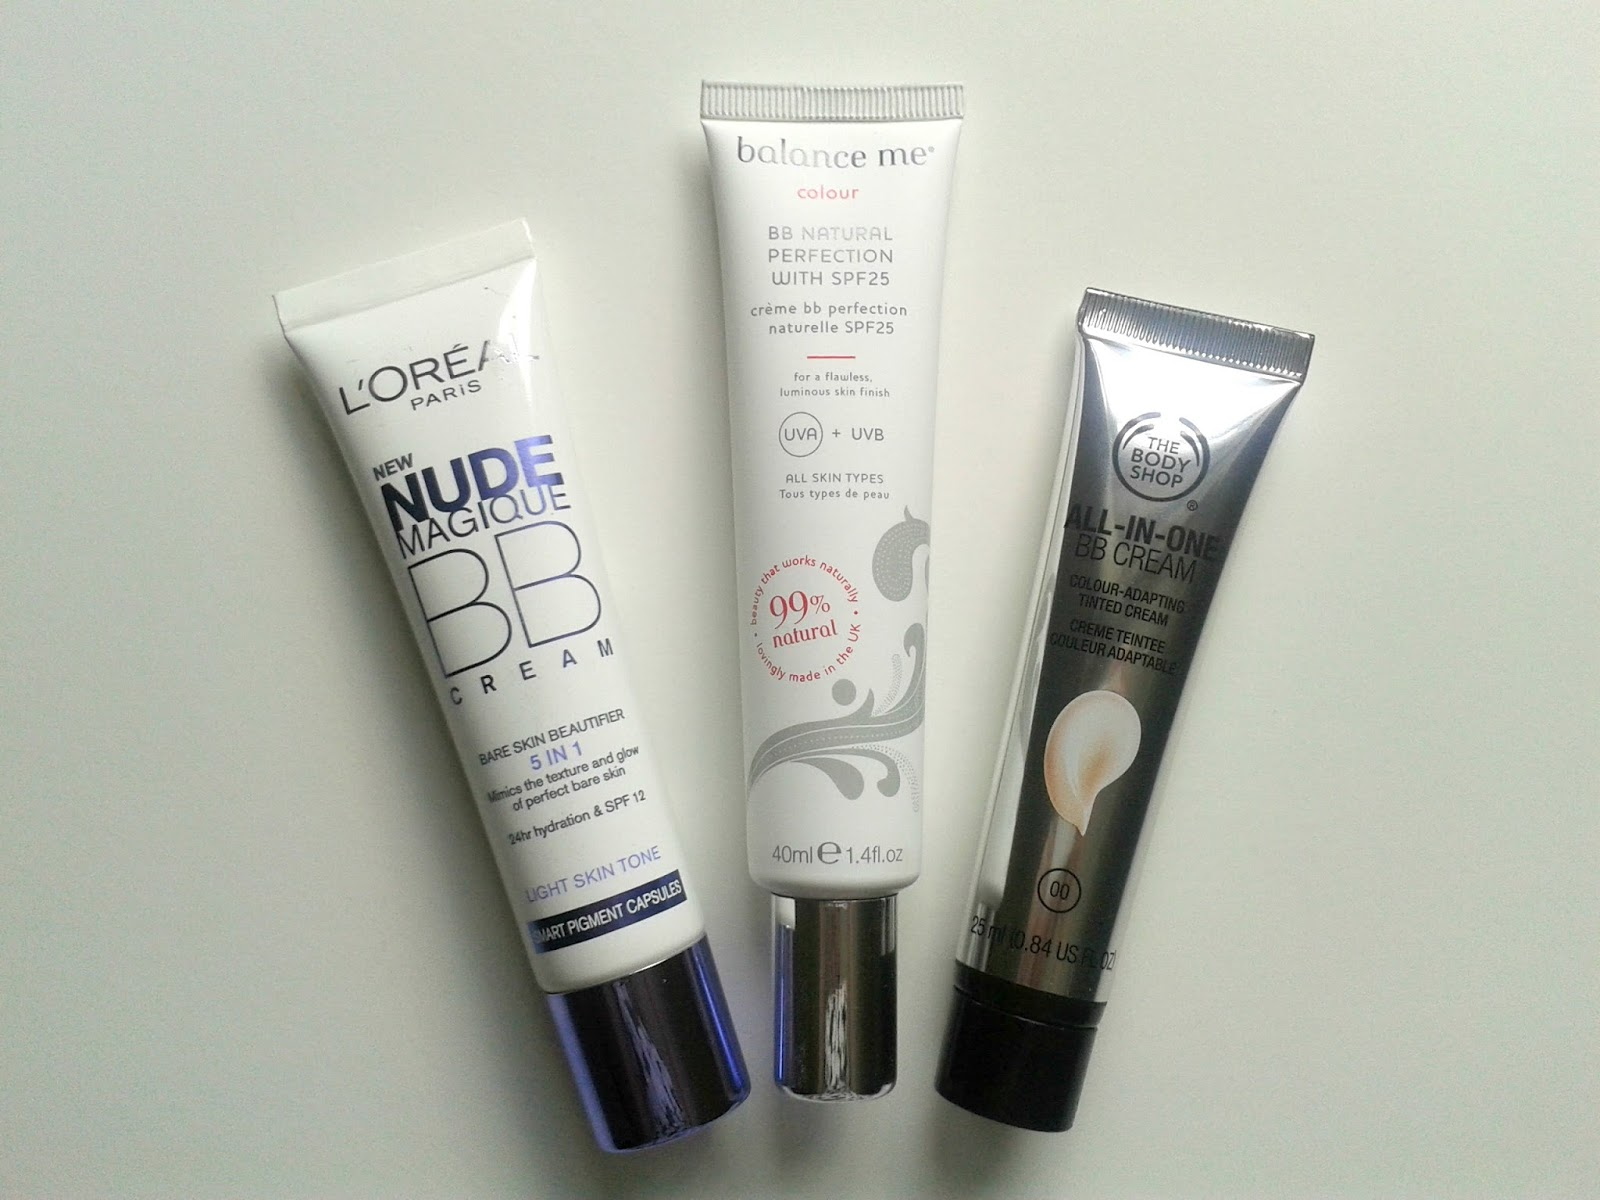 BB Cream Beauty Review L'Oreal Nude Magique BB Cream Balance Me BB Natural Perfection SPF 25 The Body Shop All In One BB Cream